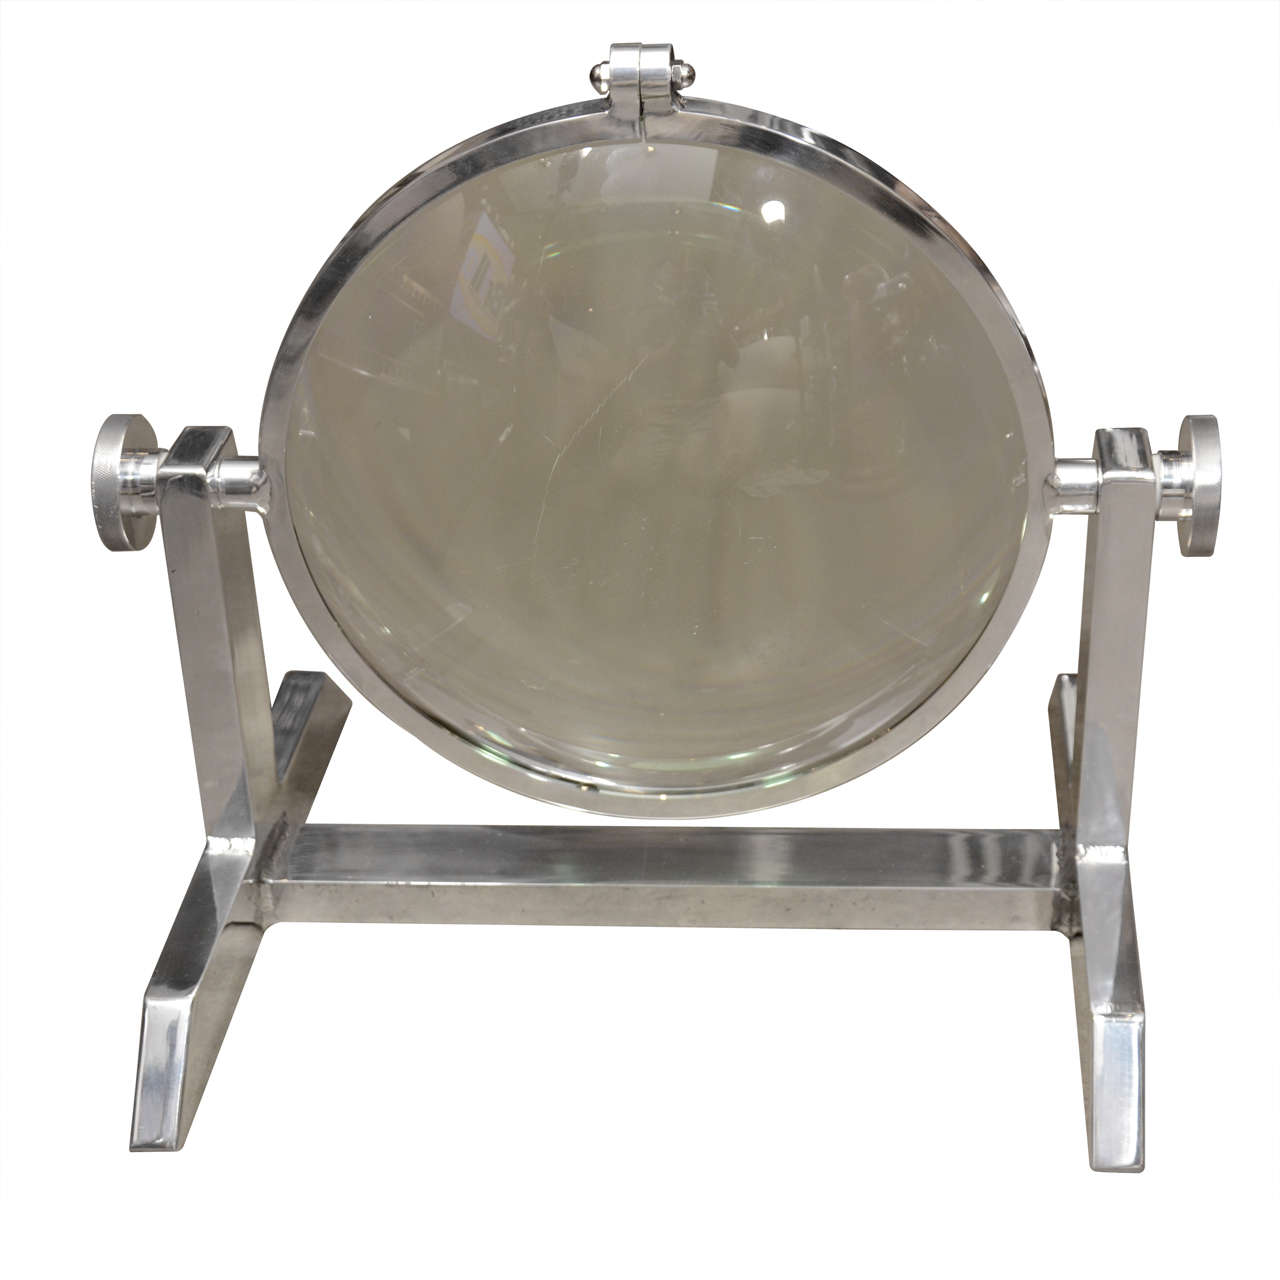 Giant Industrial Magnifier circa 1940 1